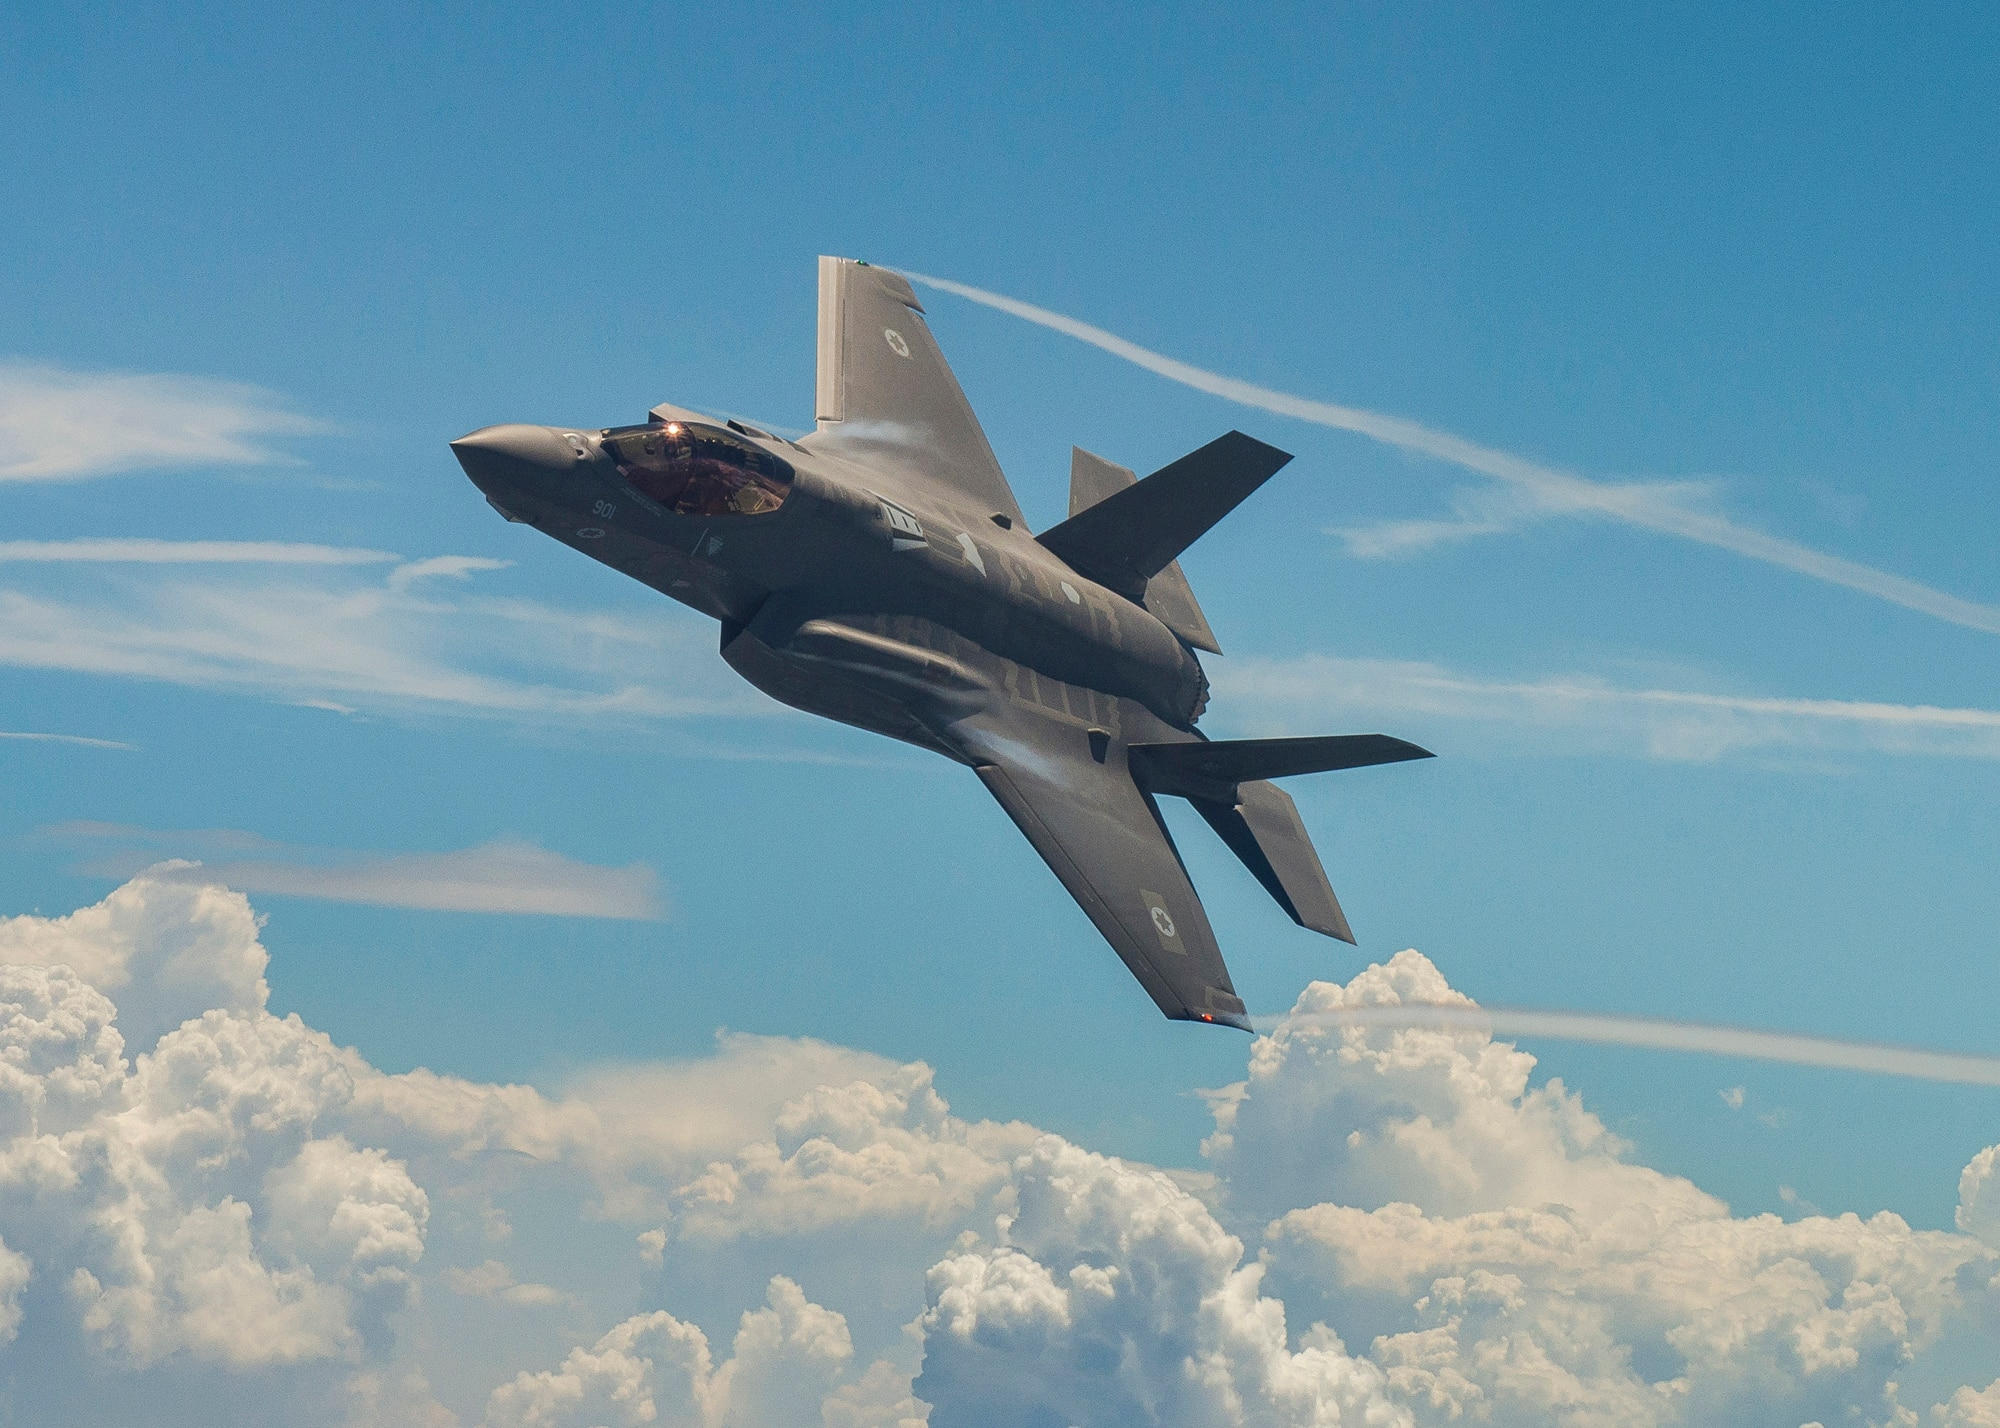 Will Washington block the F-35 sale to Turkey if Ankara buys the S-400 from Moscow?